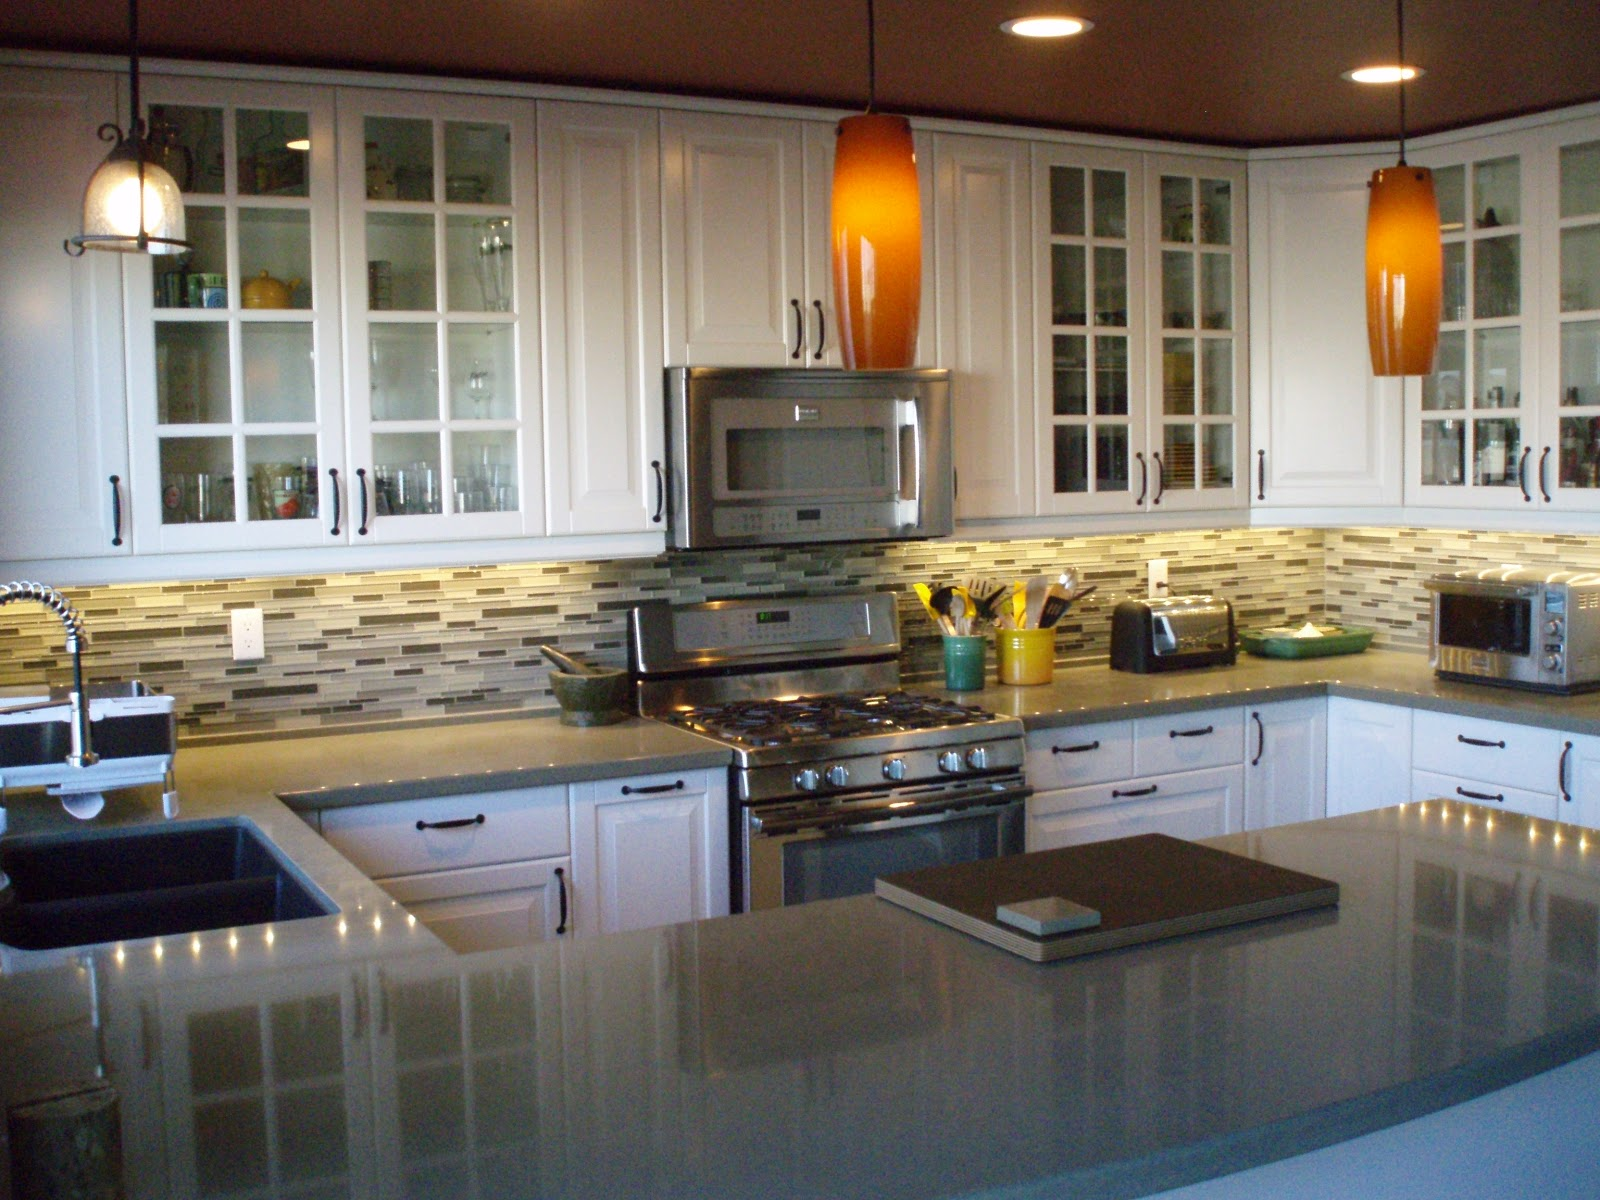 11 cost of kitchen countertops How to Save Money on an IKEA Kitchen